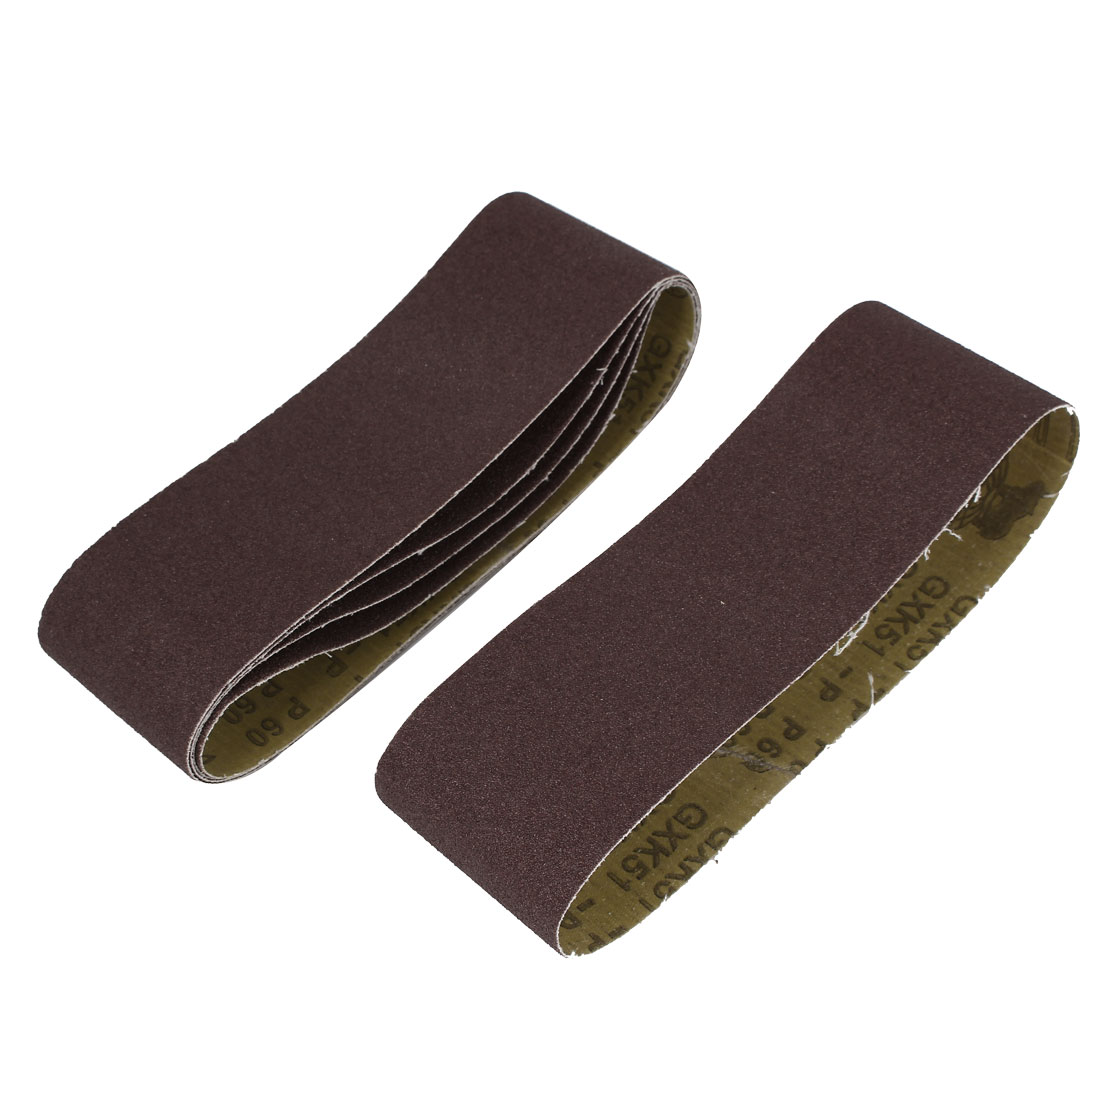 Woodworking 533mmx75mm 60 Grit Abrasive Sanding Belt Sandpaper 5pcs